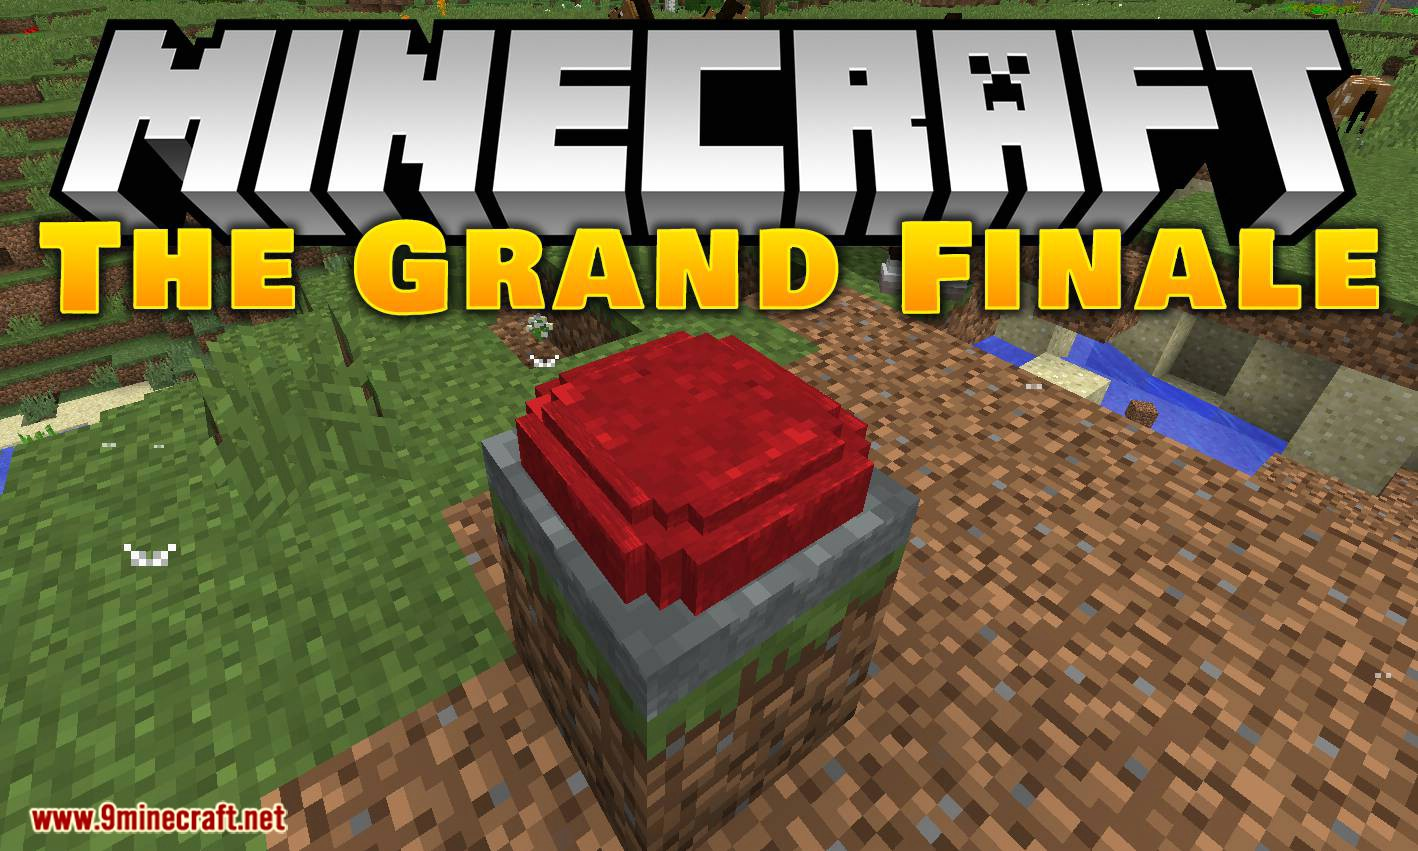 The Grand Finale mod for minecraft logo